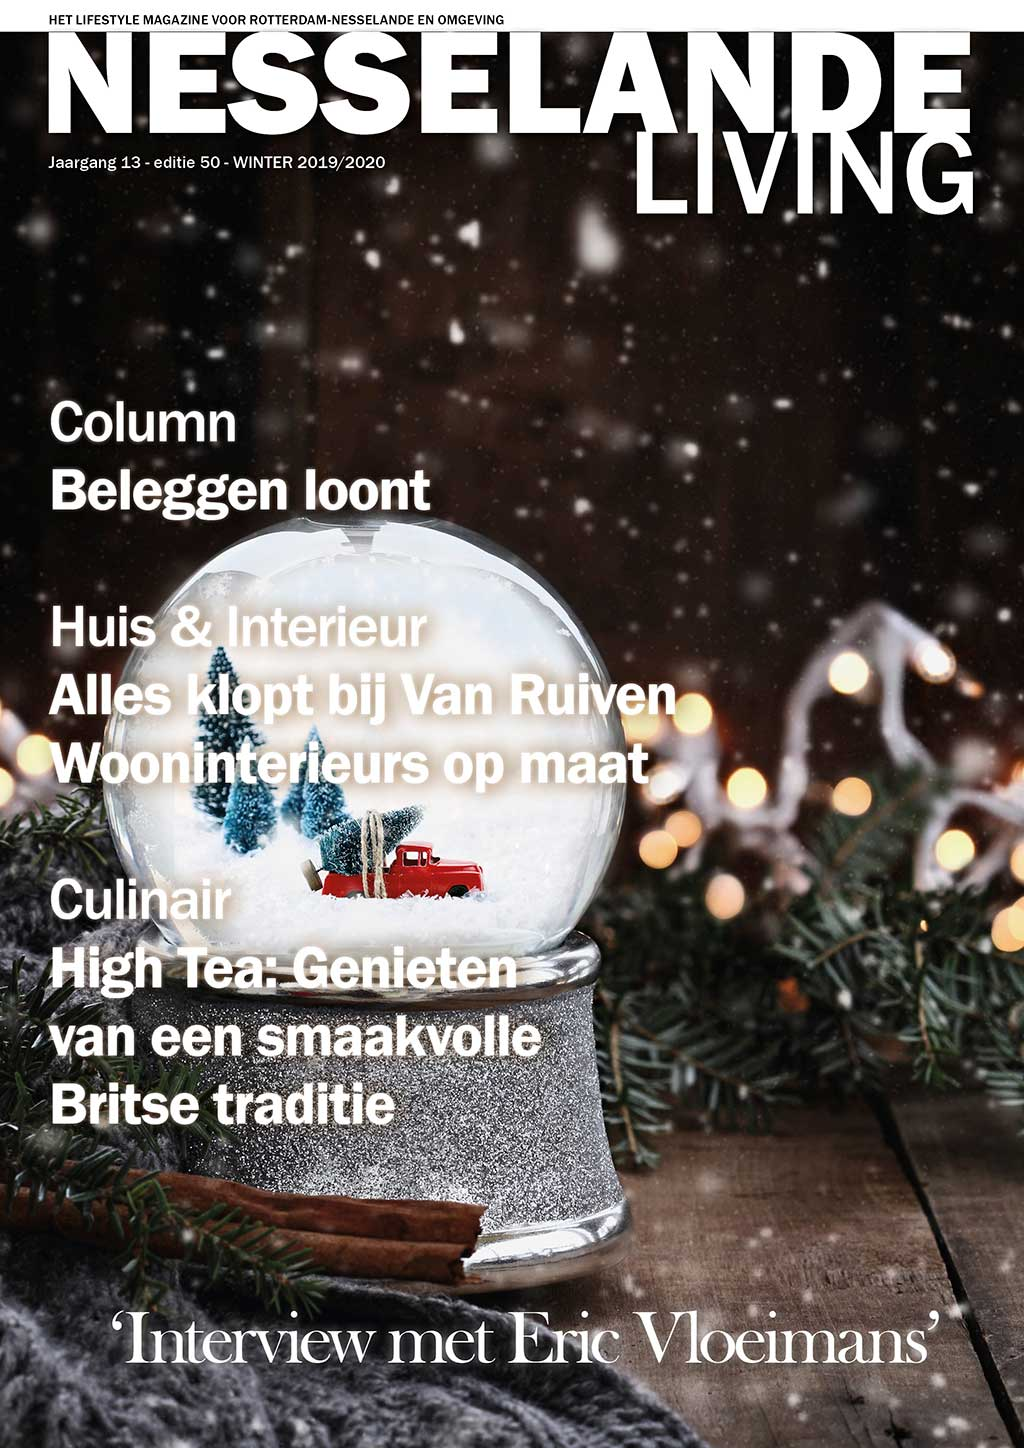 Cover Nesselande Living editie 50 - winter 2019/20